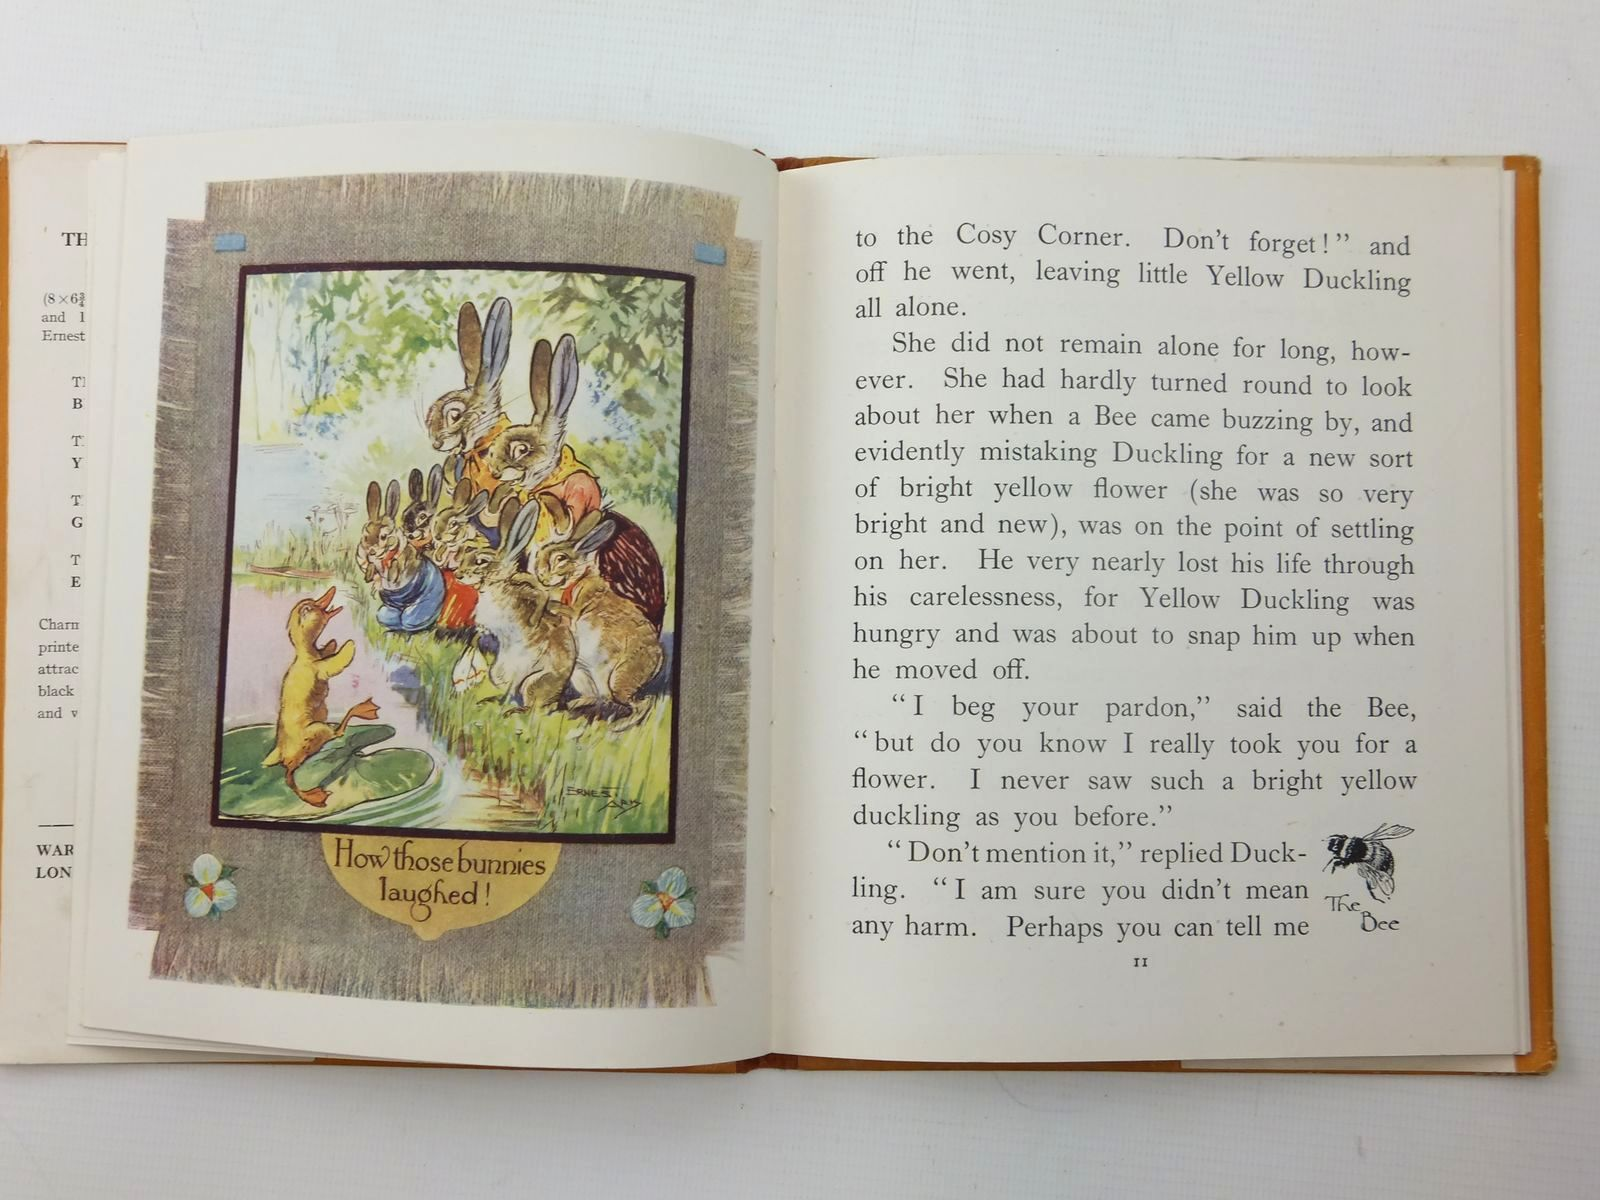 Photo of THE STORY OF YELLOW DUCKLING written by Aris, Ernest A. illustrated by Aris, Ernest A. published by Ward, Lock & Co. Limited (STOCK CODE: 1814881)  for sale by Stella & Rose's Books